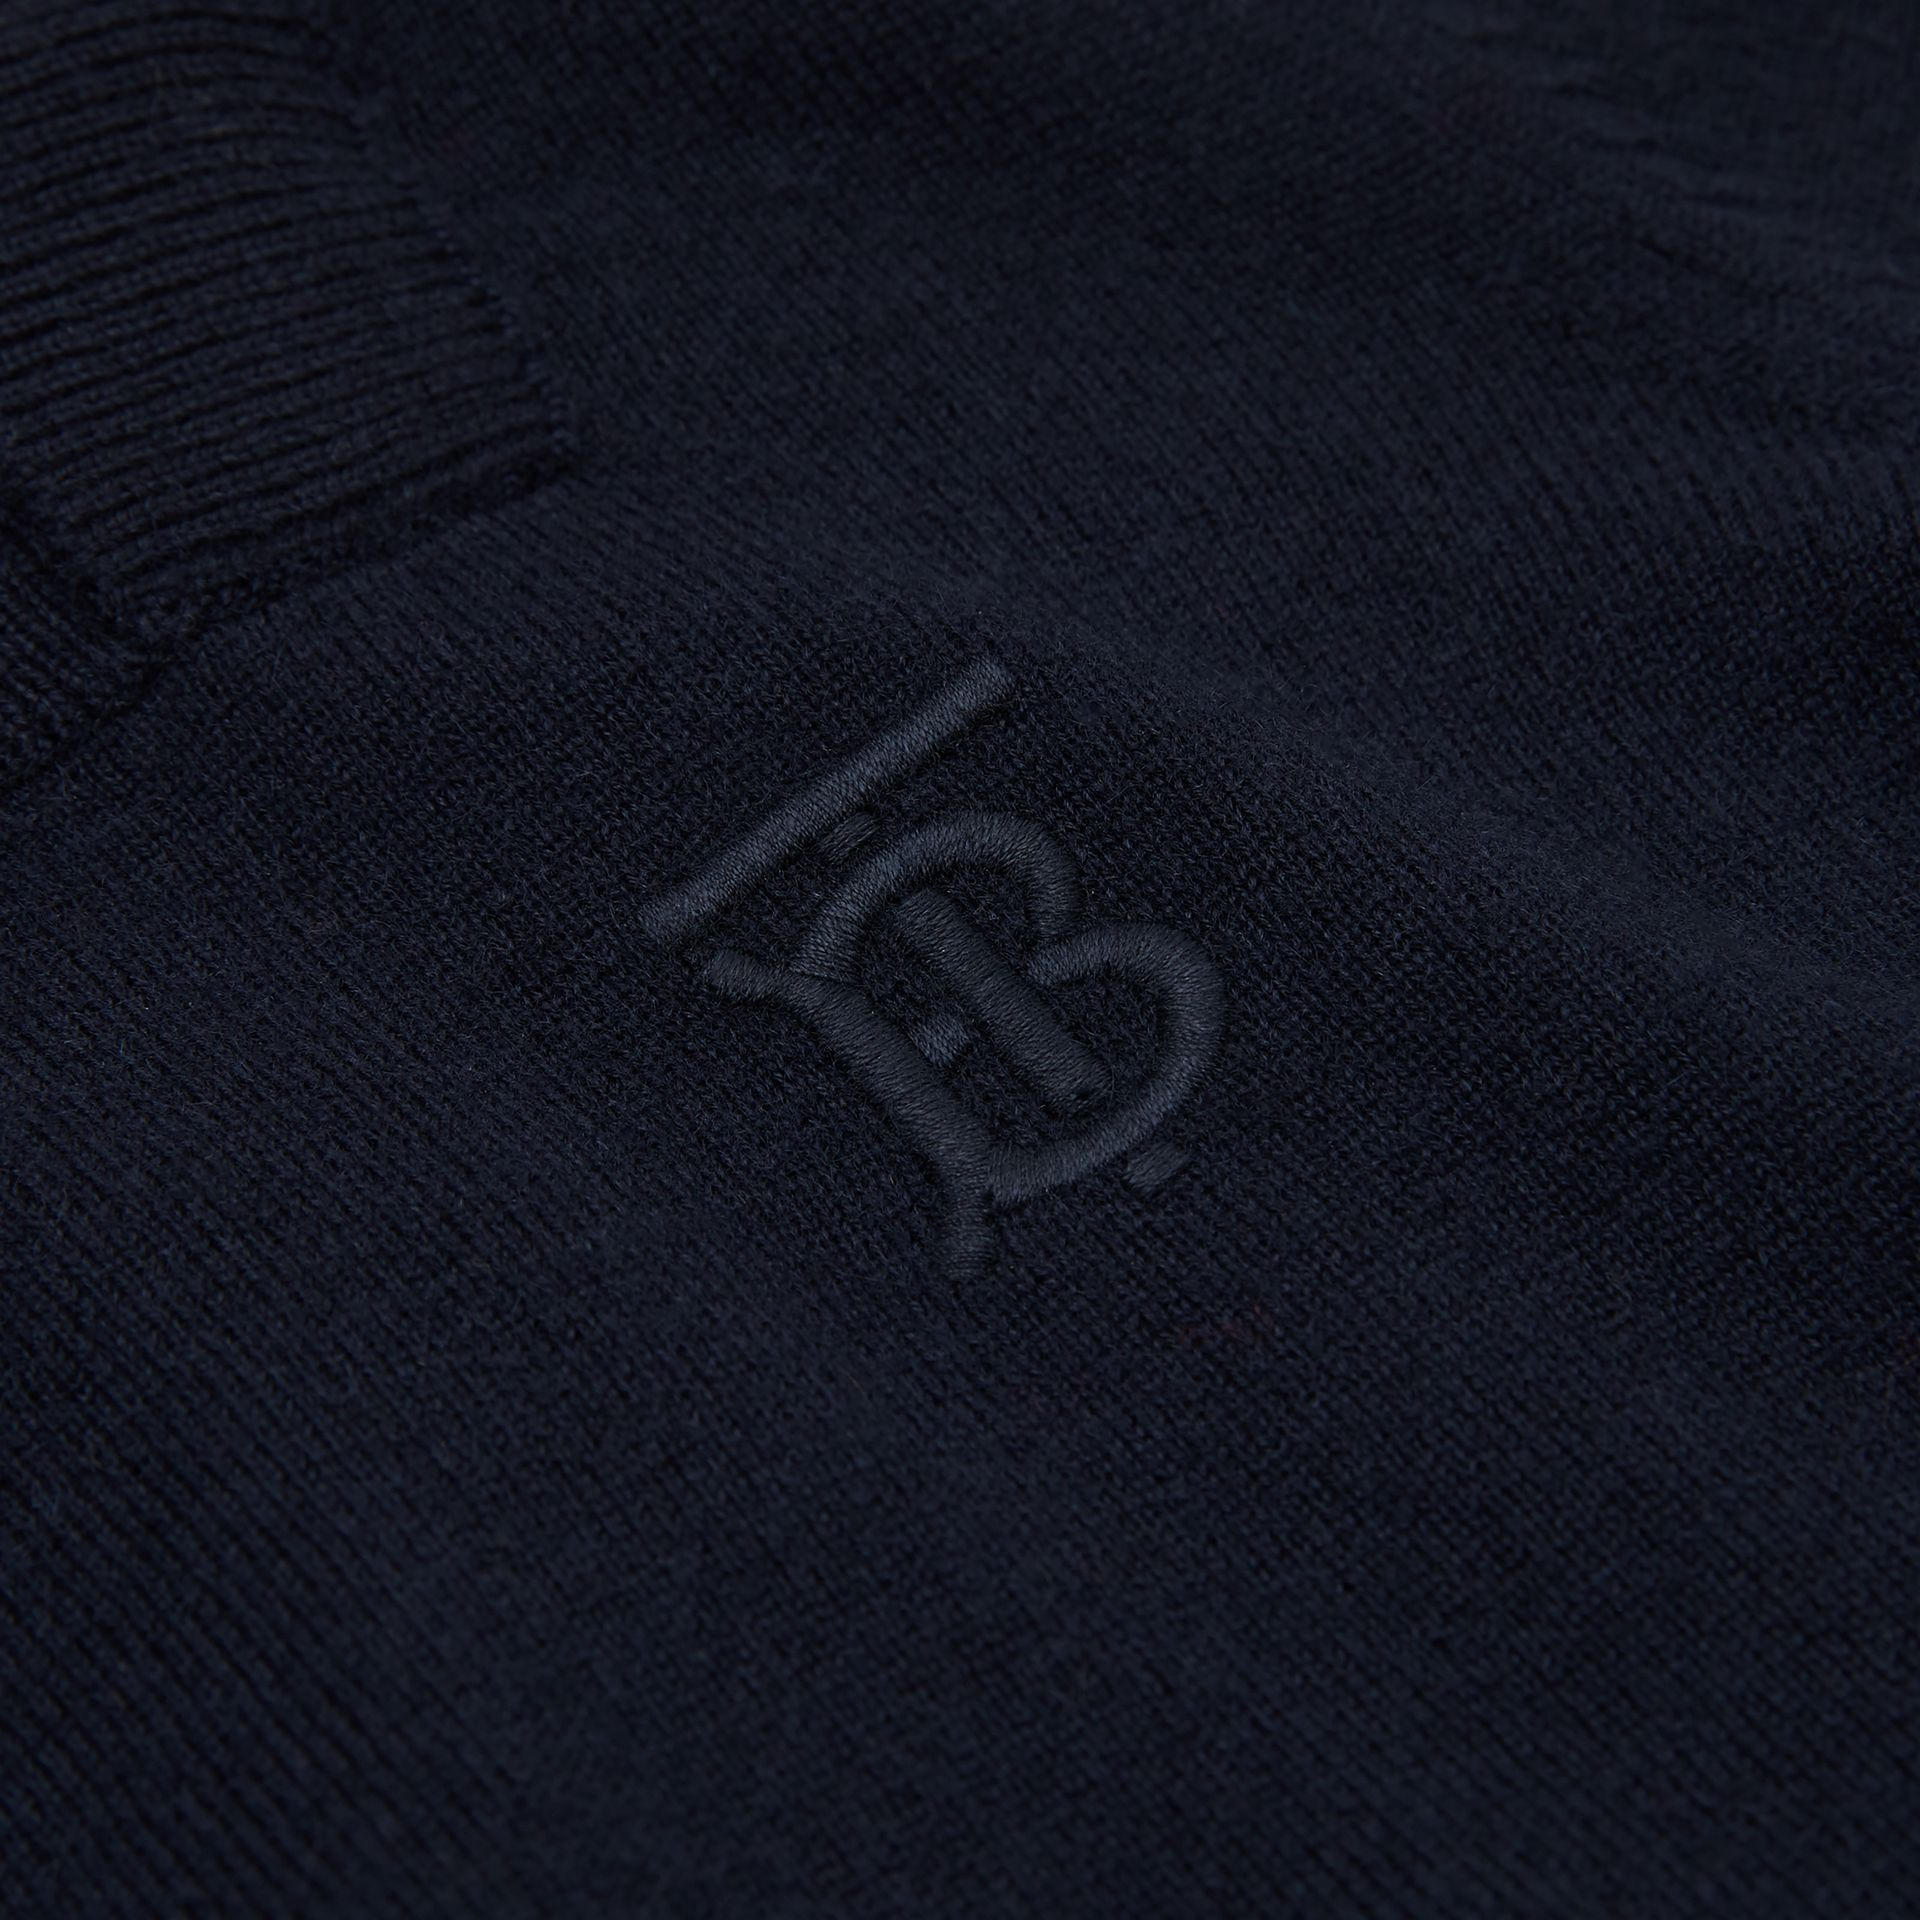 Monogram Motif Cashmere Sweater in Navy | Burberry - gallery image 1